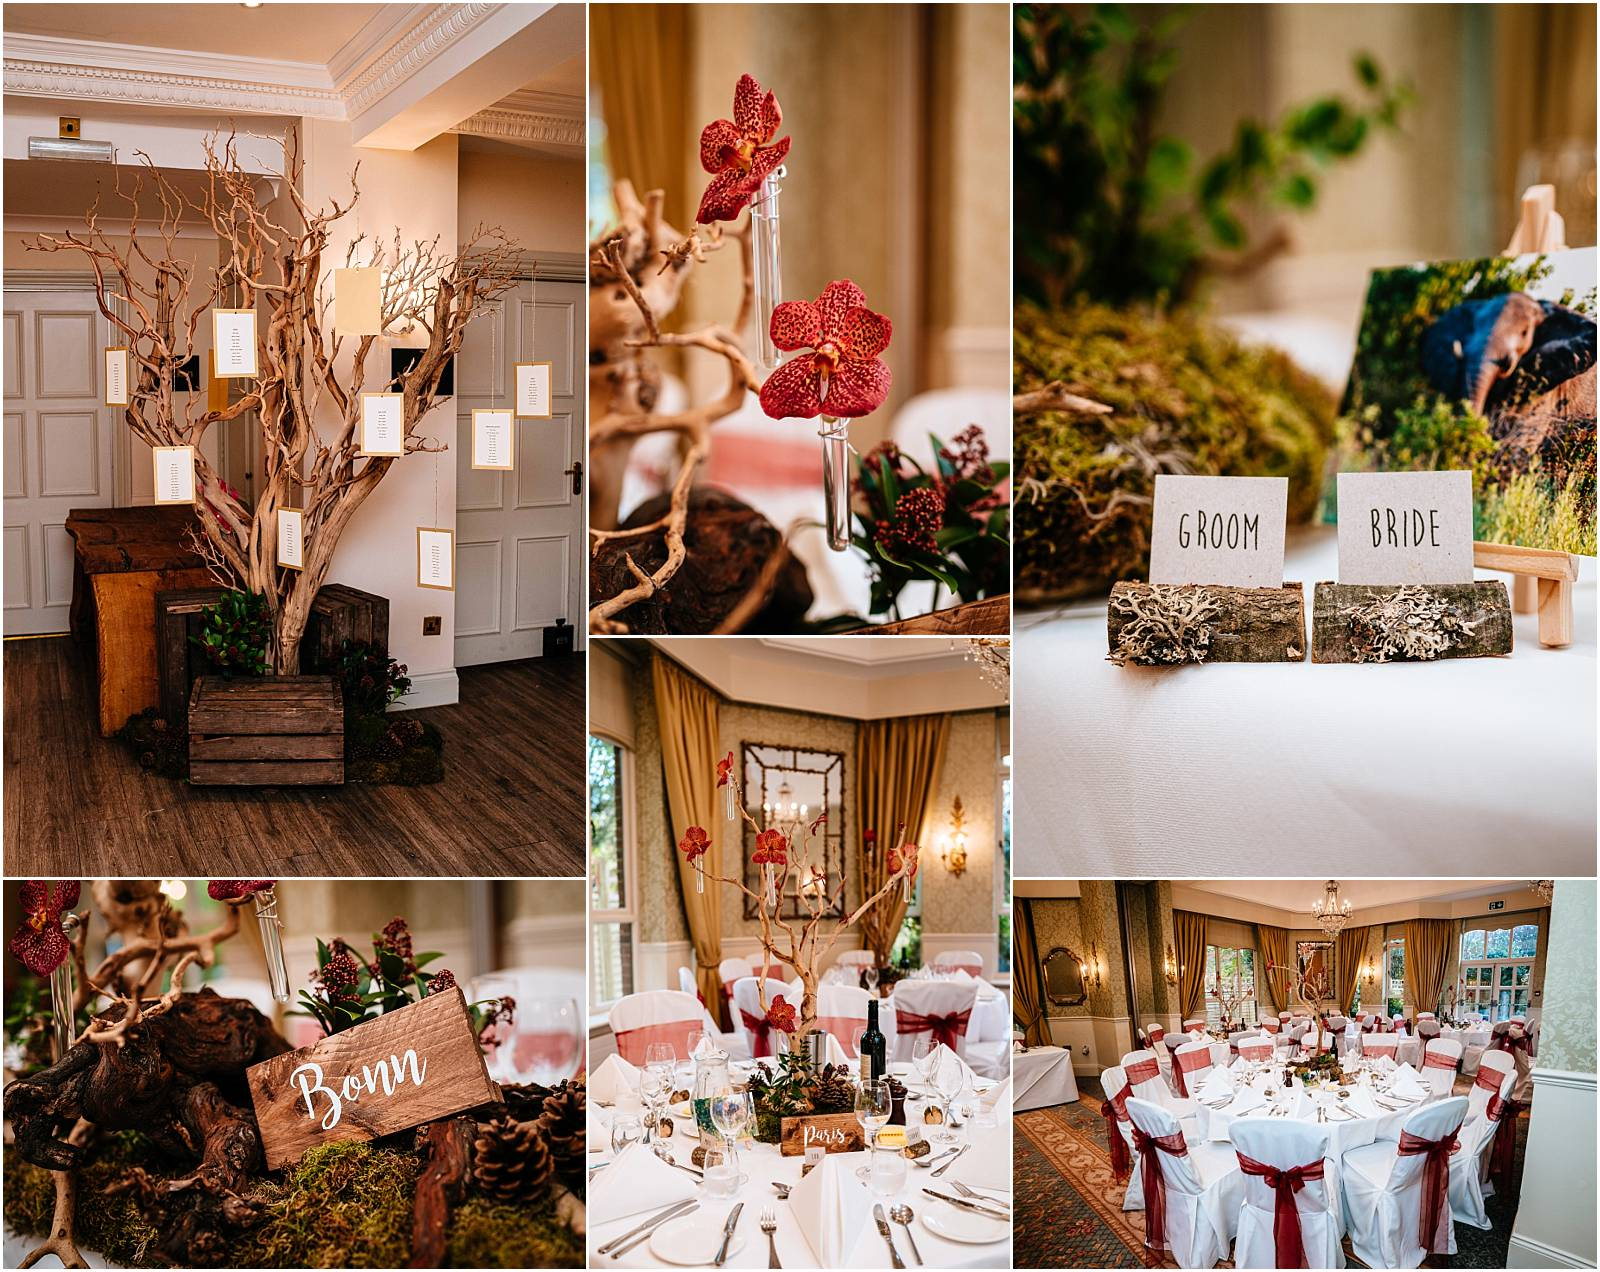 Little lillies wedding flowers at careys manor